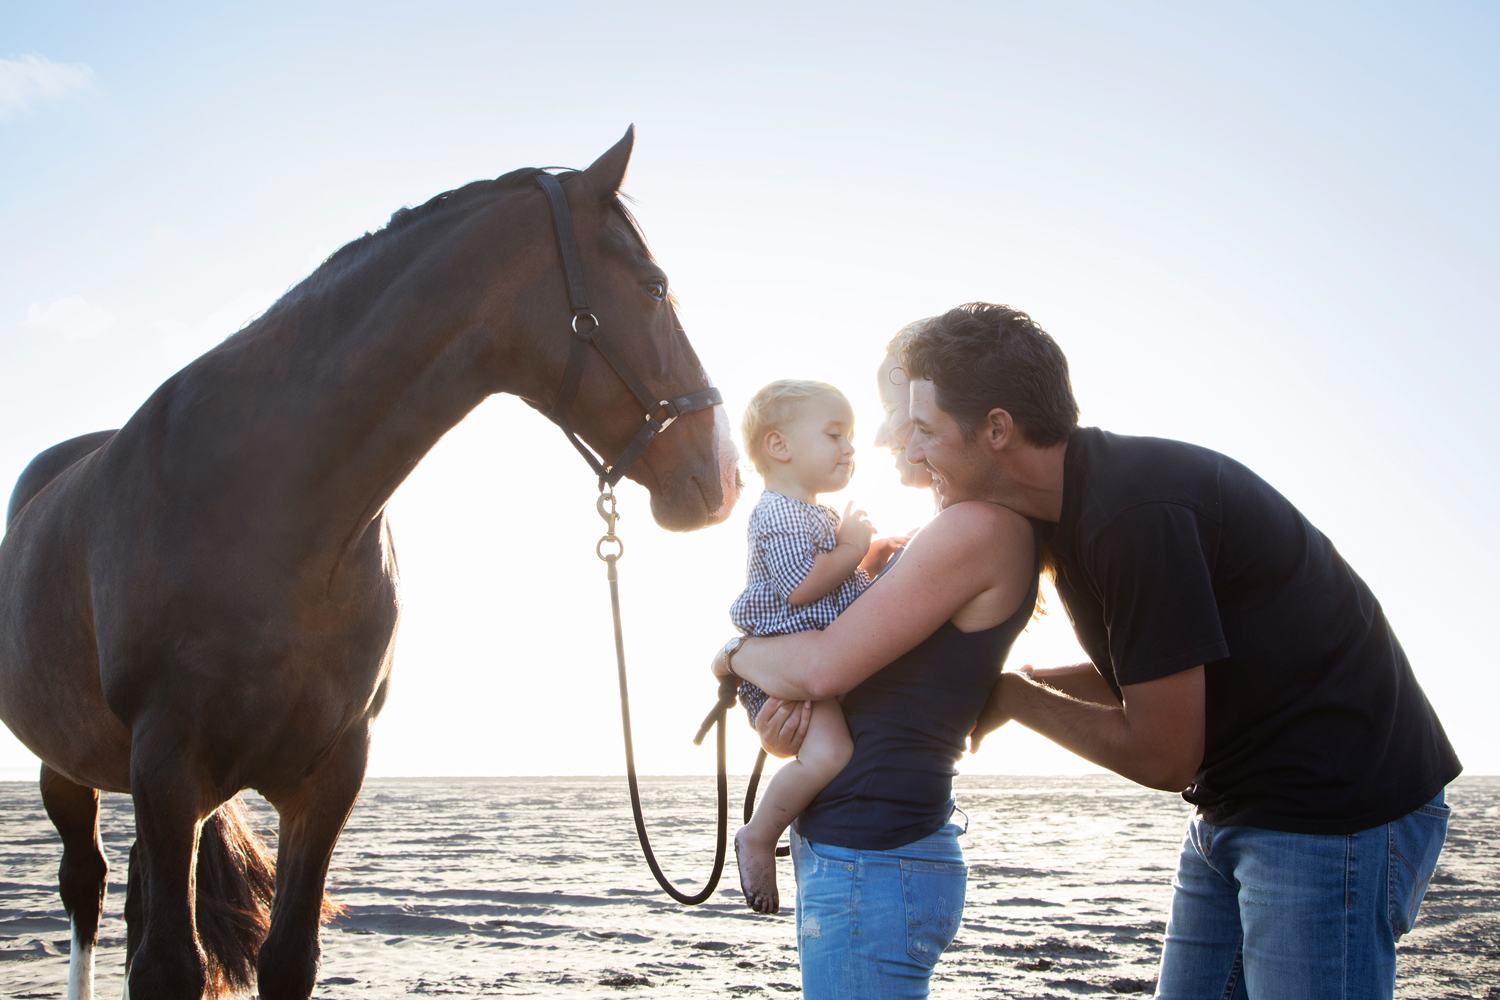 Family Portrait of couple with toddler on beach, Horse standing beside them, sunset